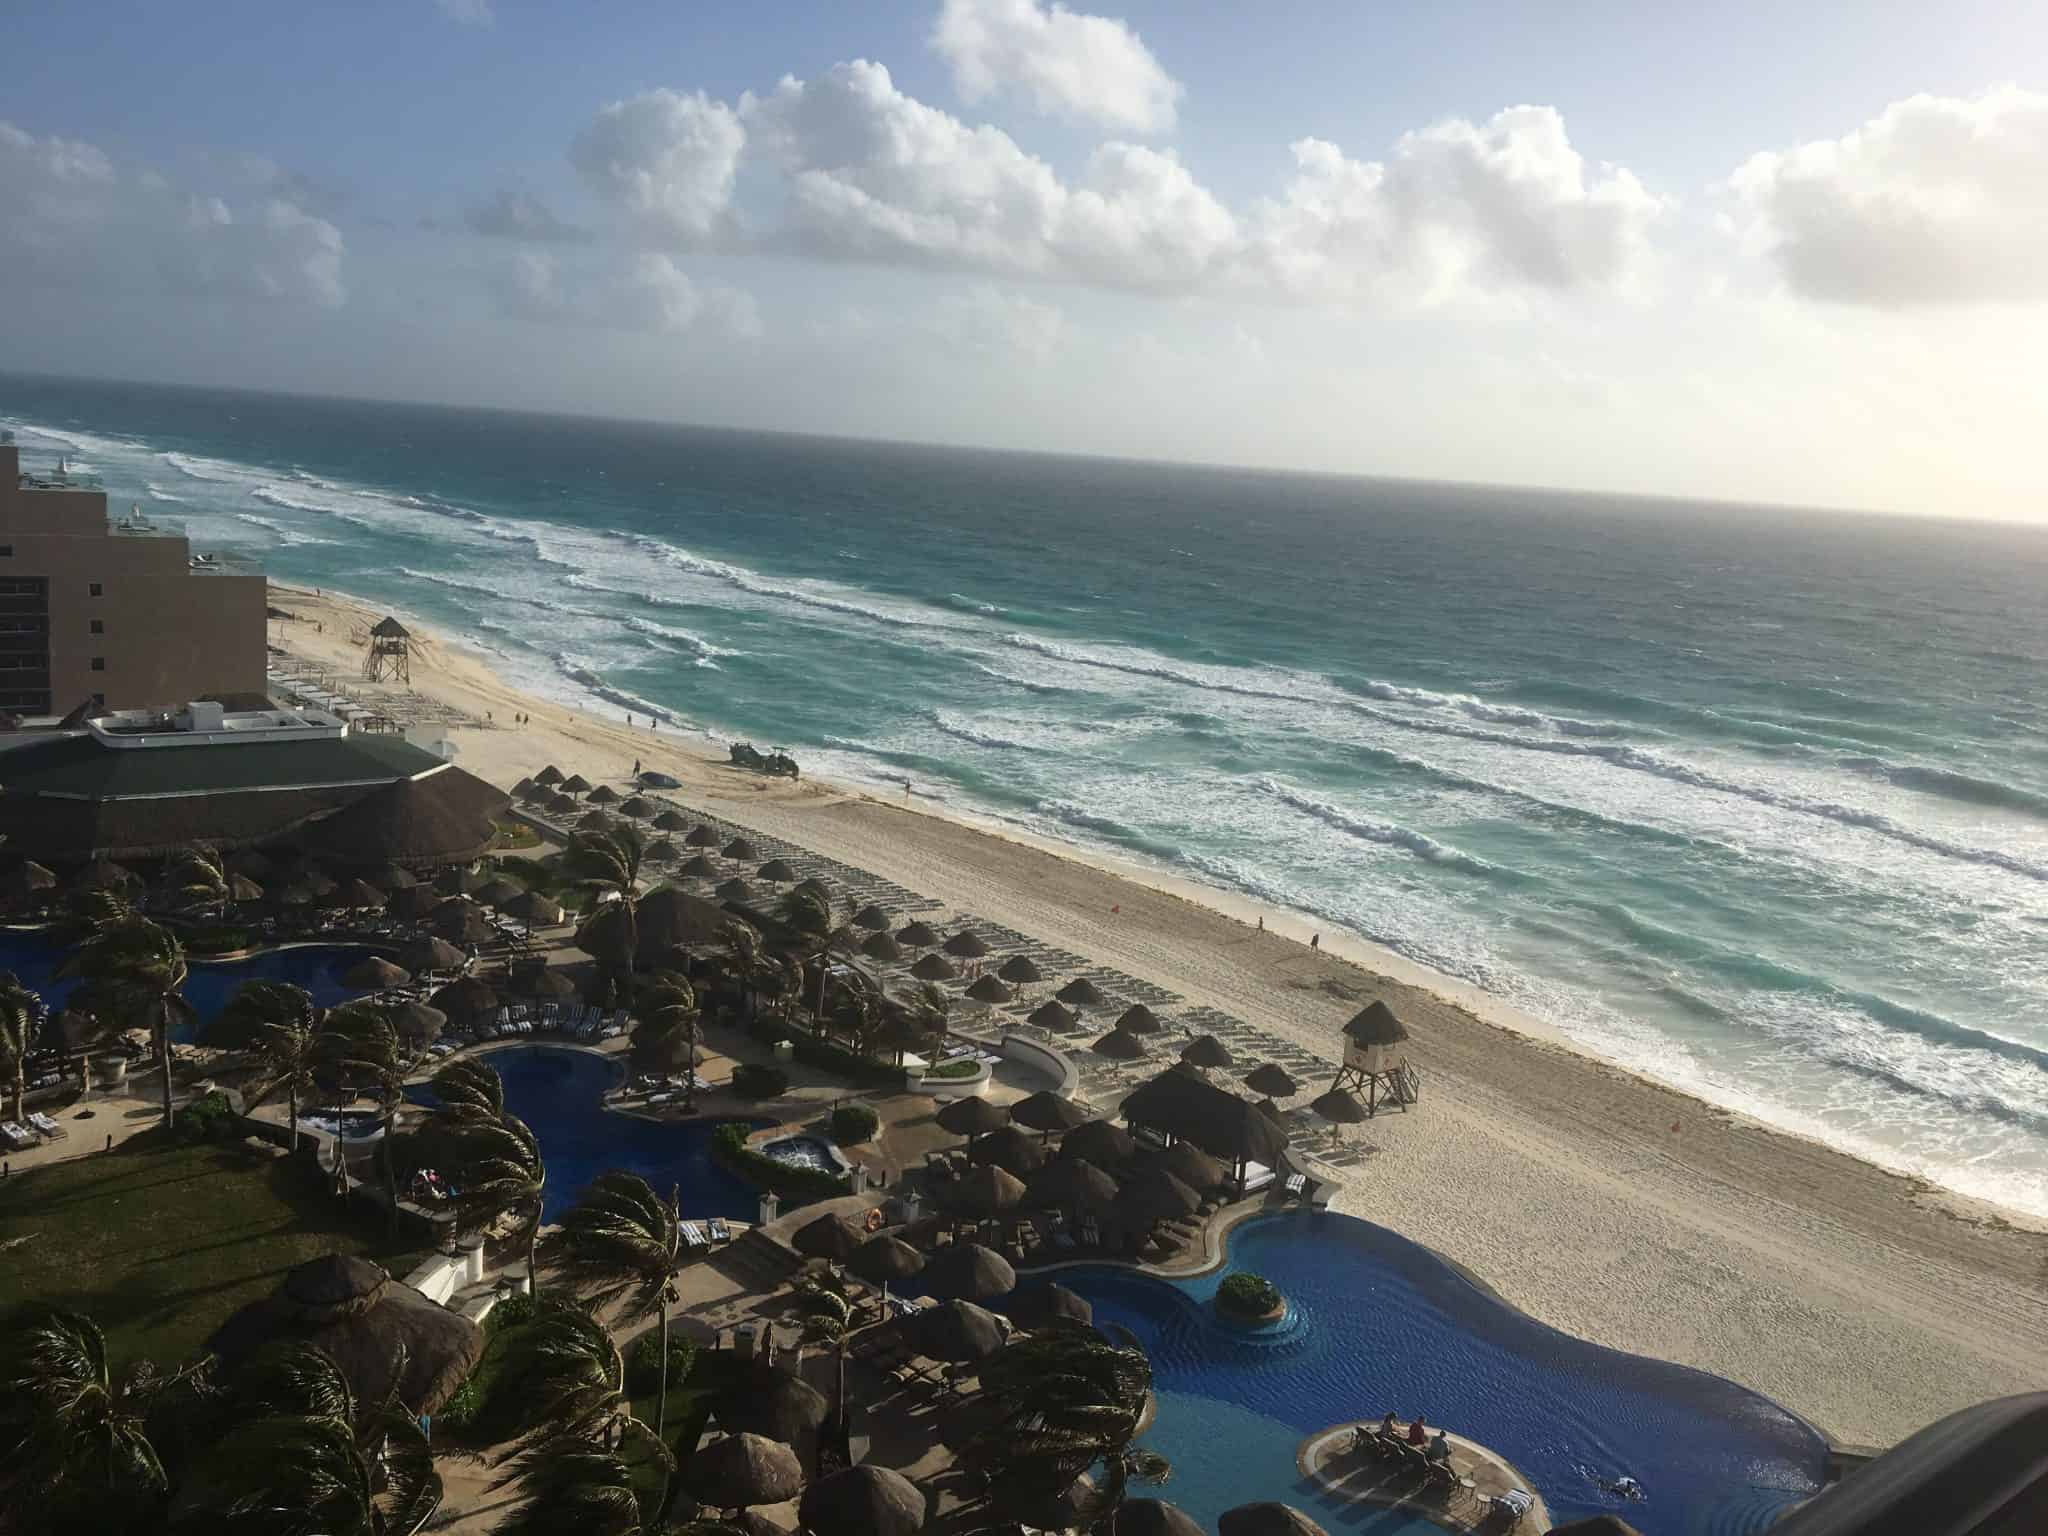 The view from our balcony in Cancun - this is definitely where to stay in Cancun